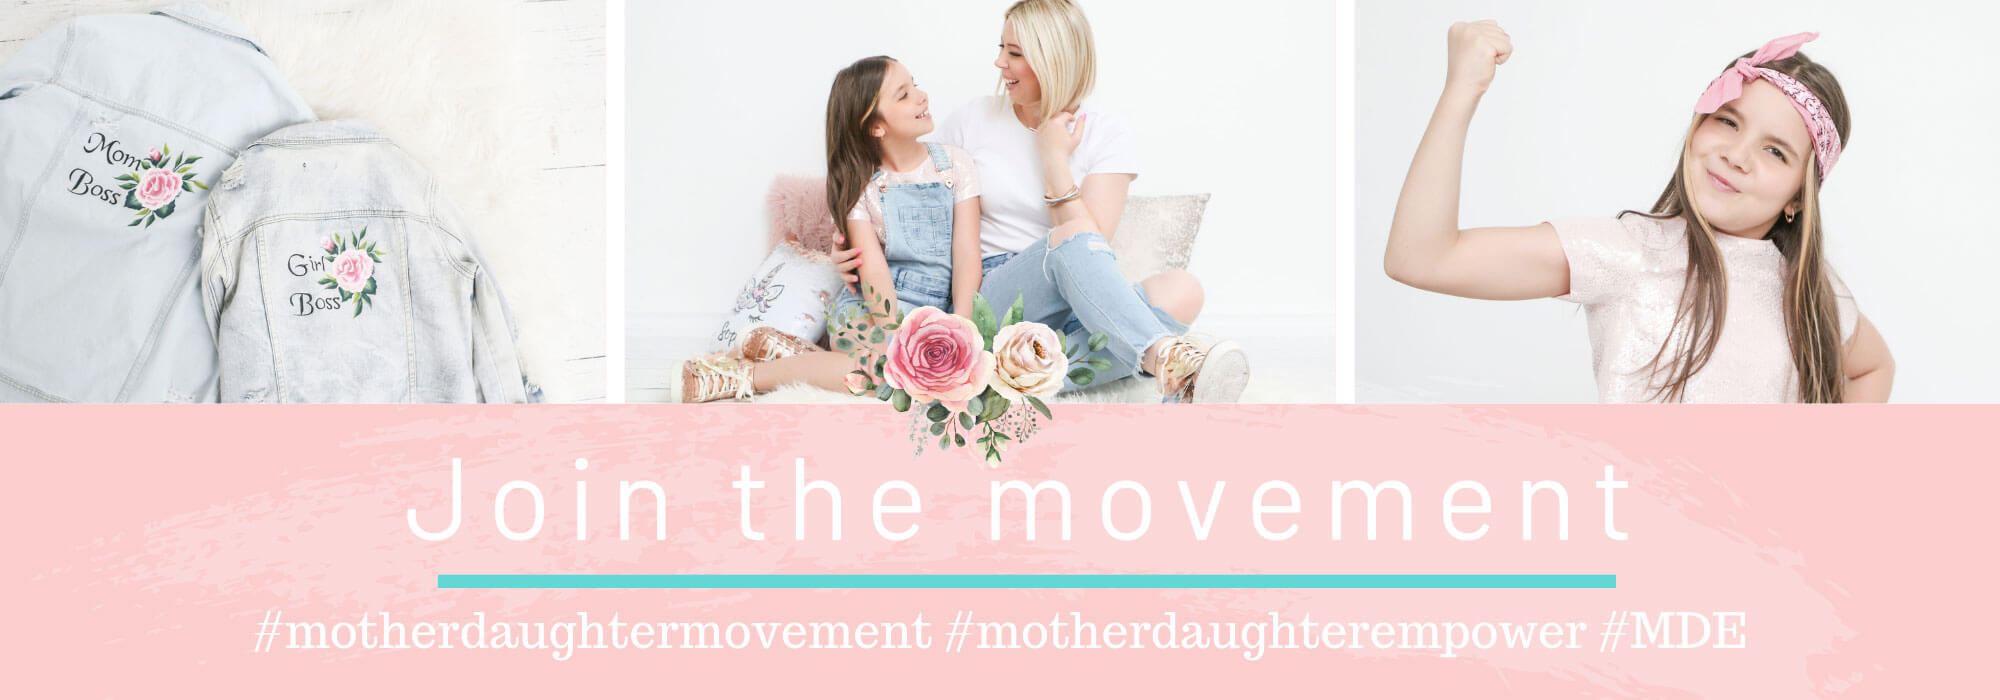 Mother Daughter Empower - Join the movement